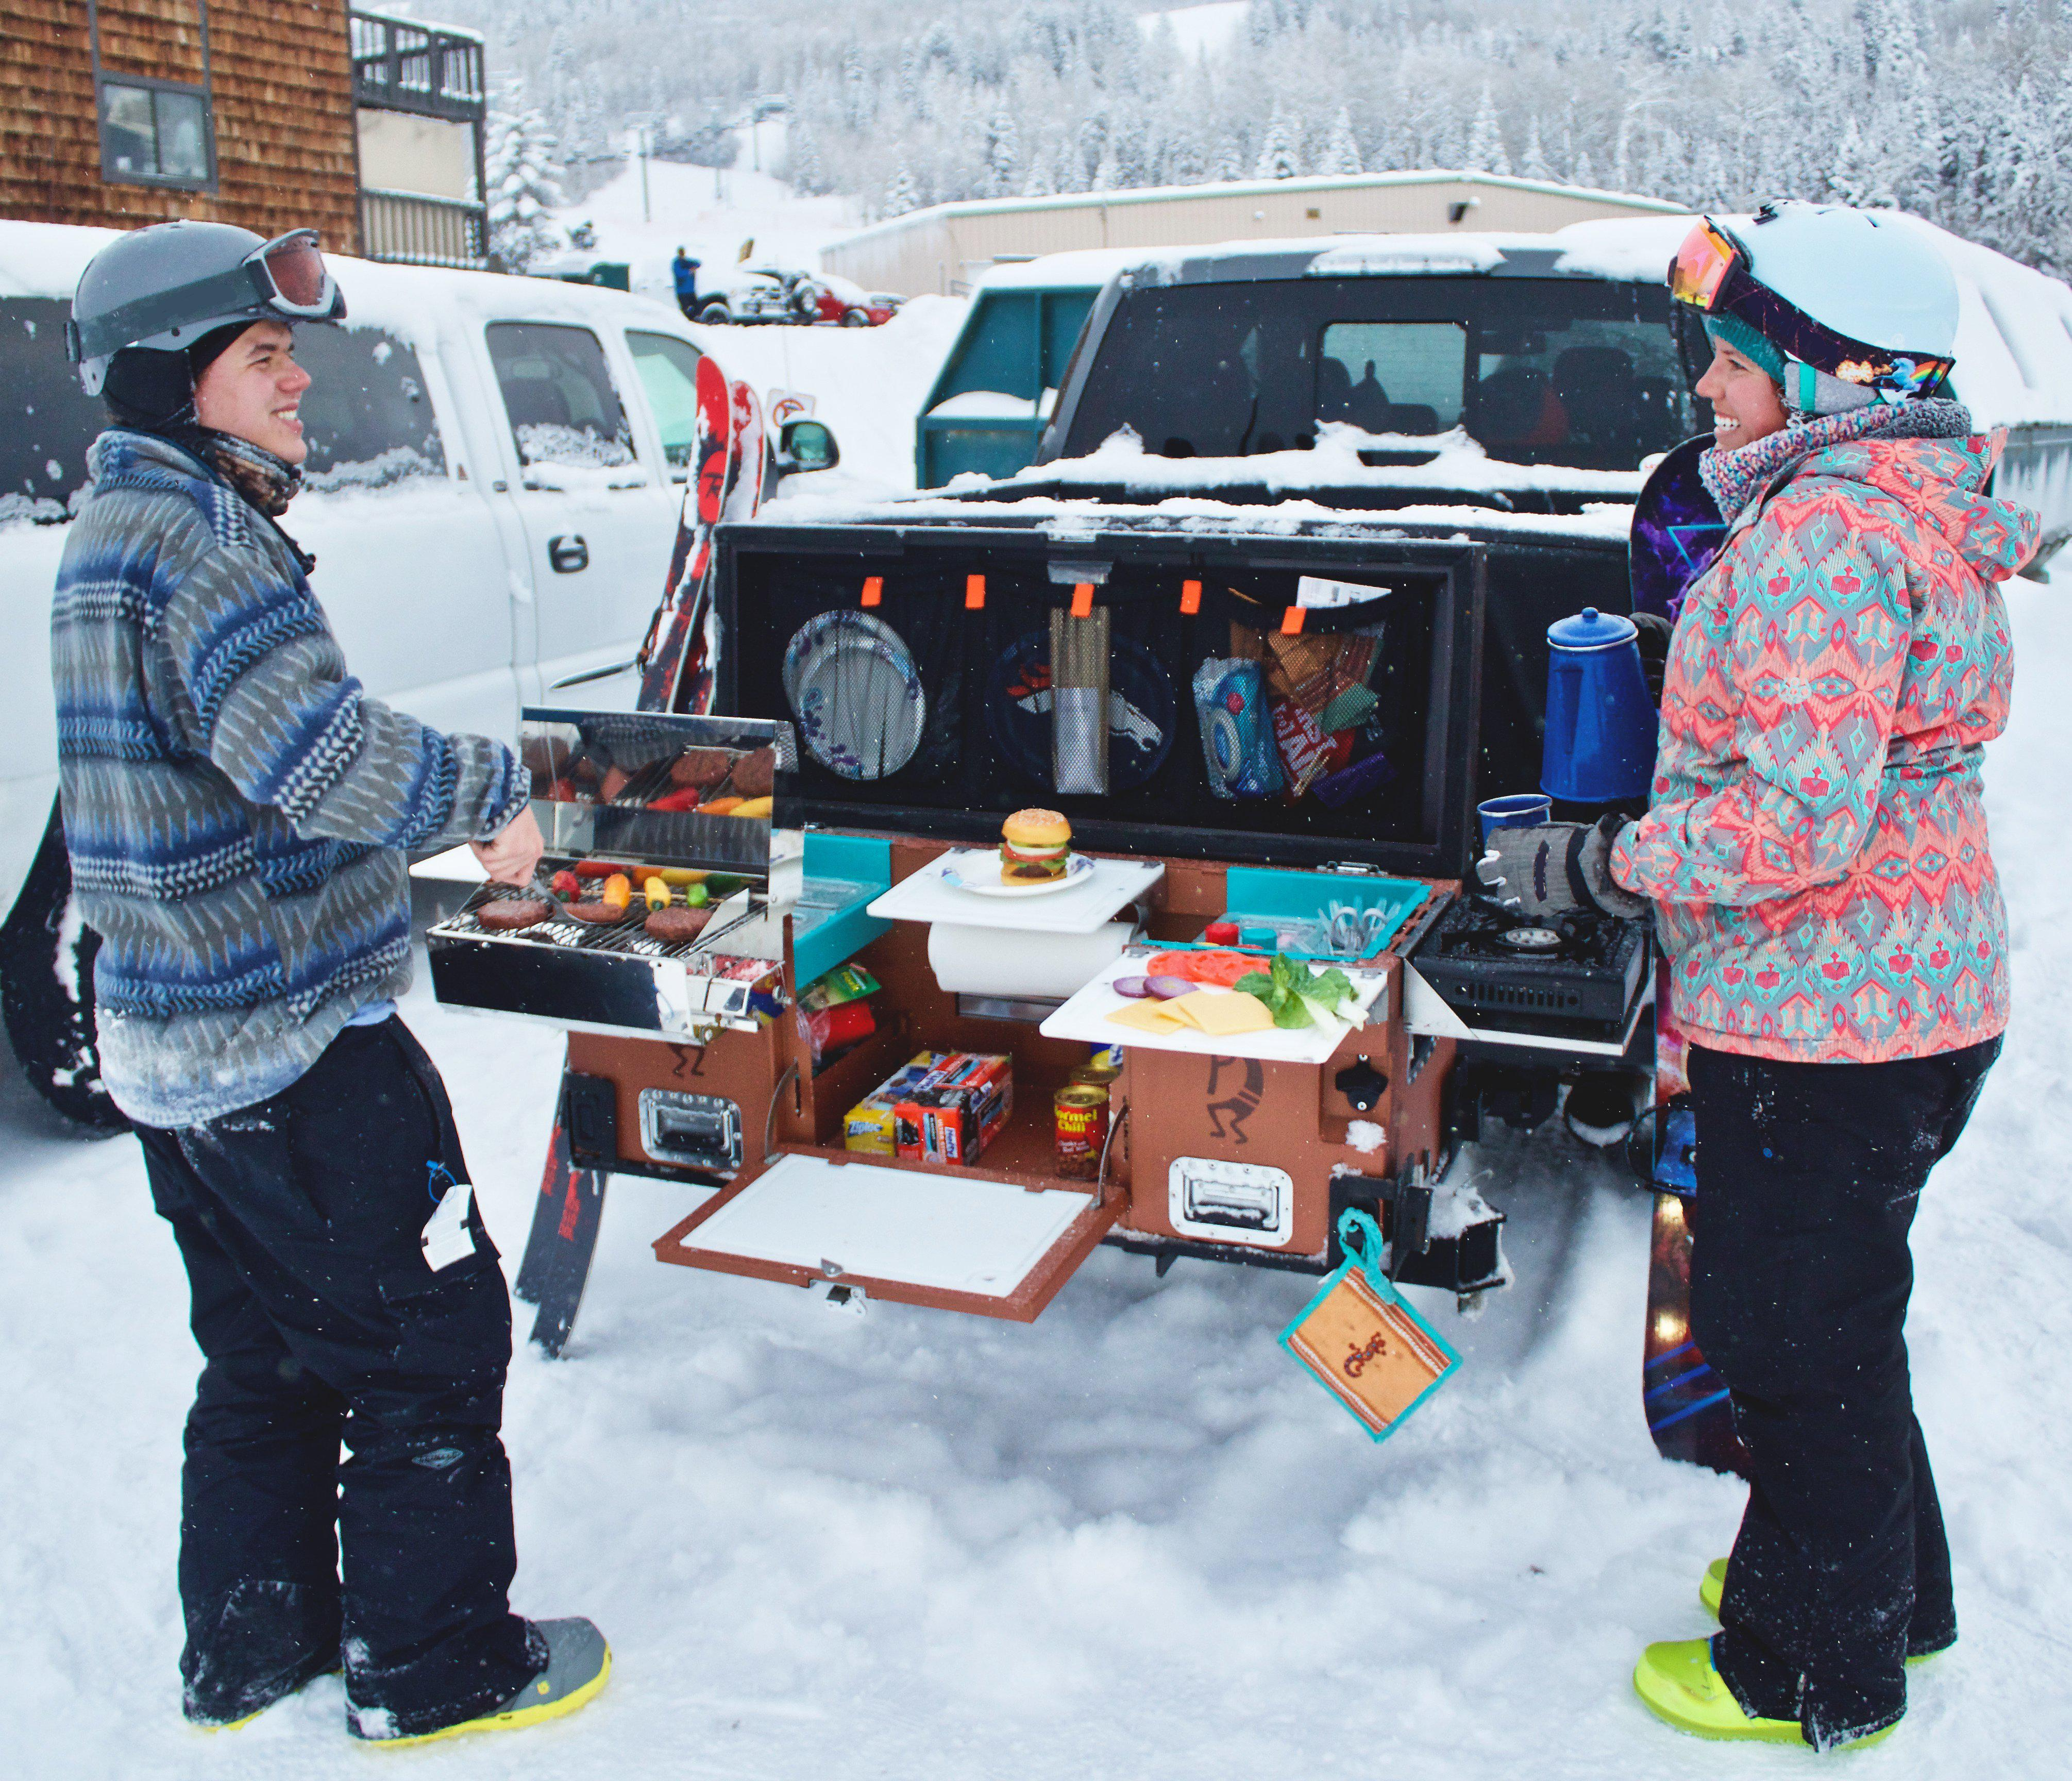 Tailgate N Go fully kitted and being used in the snow by skiers.